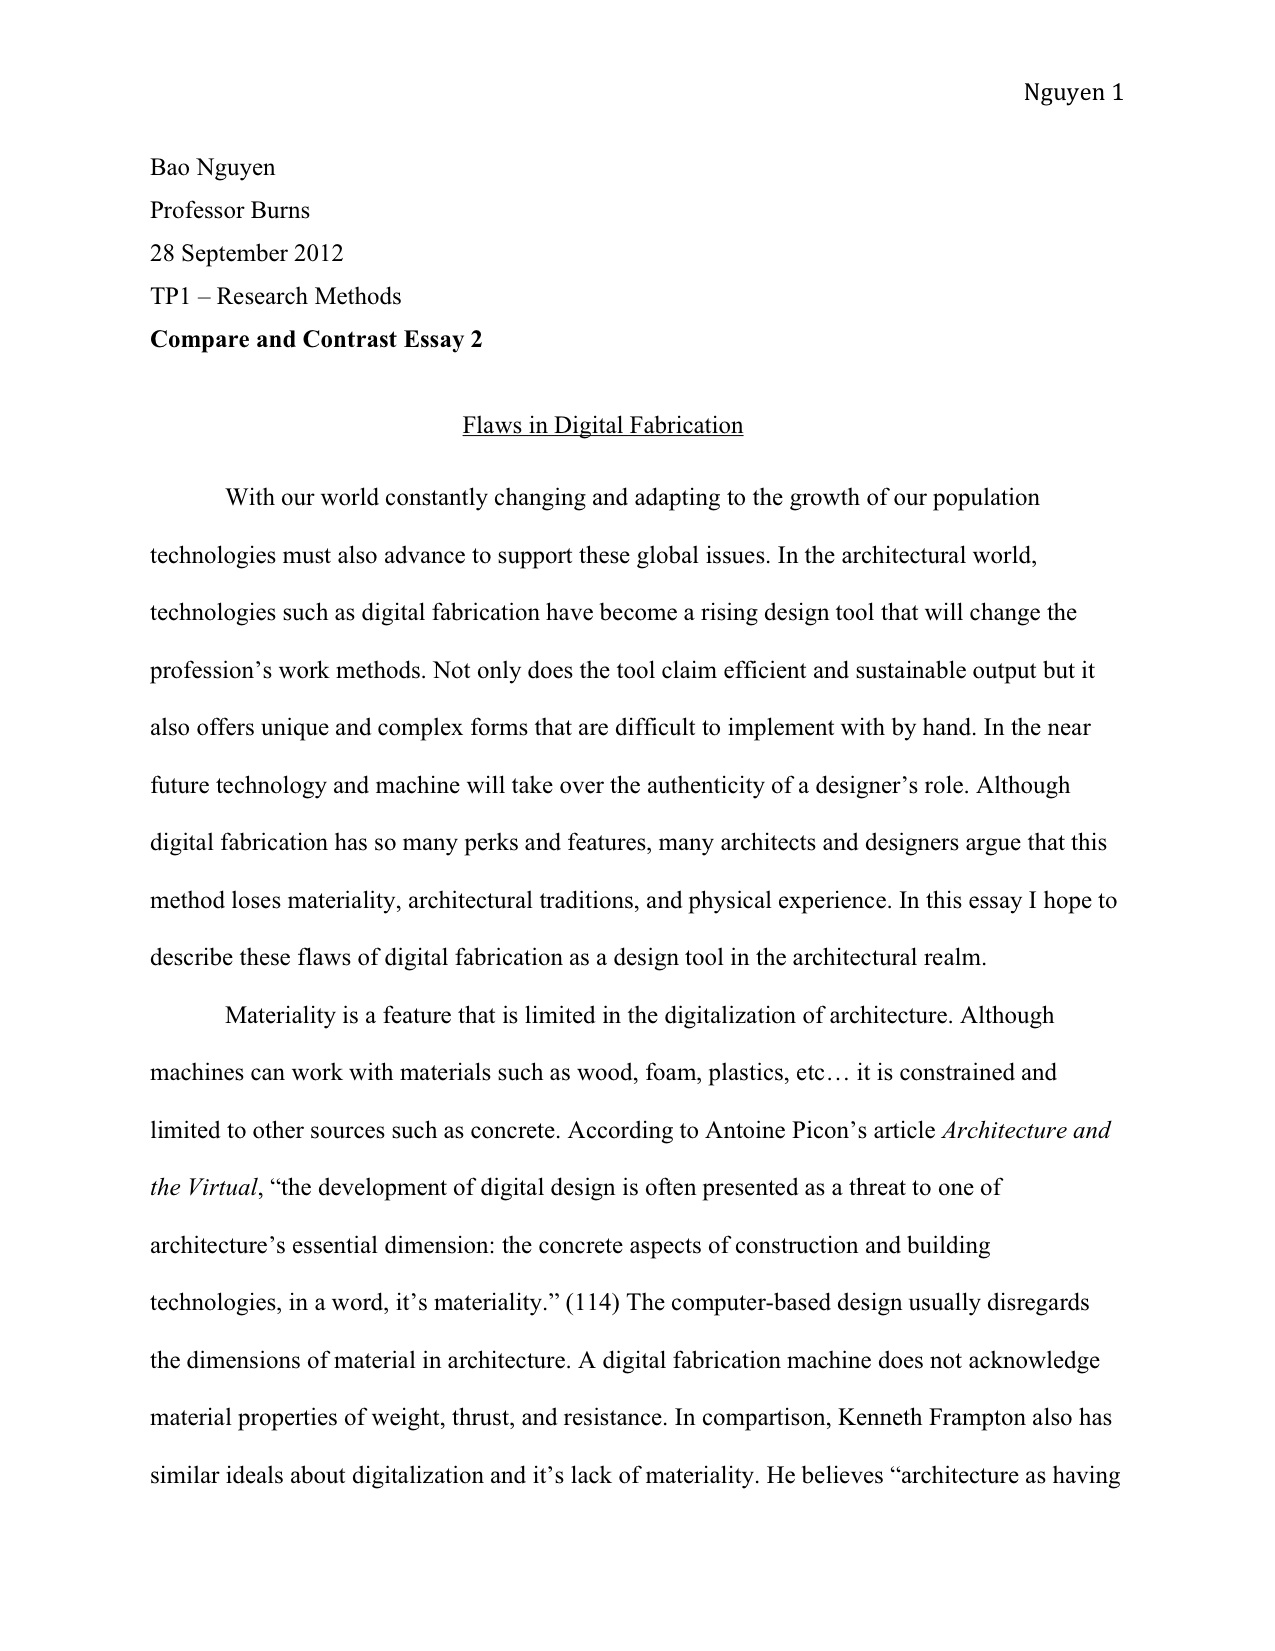 002 Tp1 3 Essay Example How Do You Write Unbelievable A Persuasive For Middle School To Paper In Mla Format On Word Microsoft 2010 Full